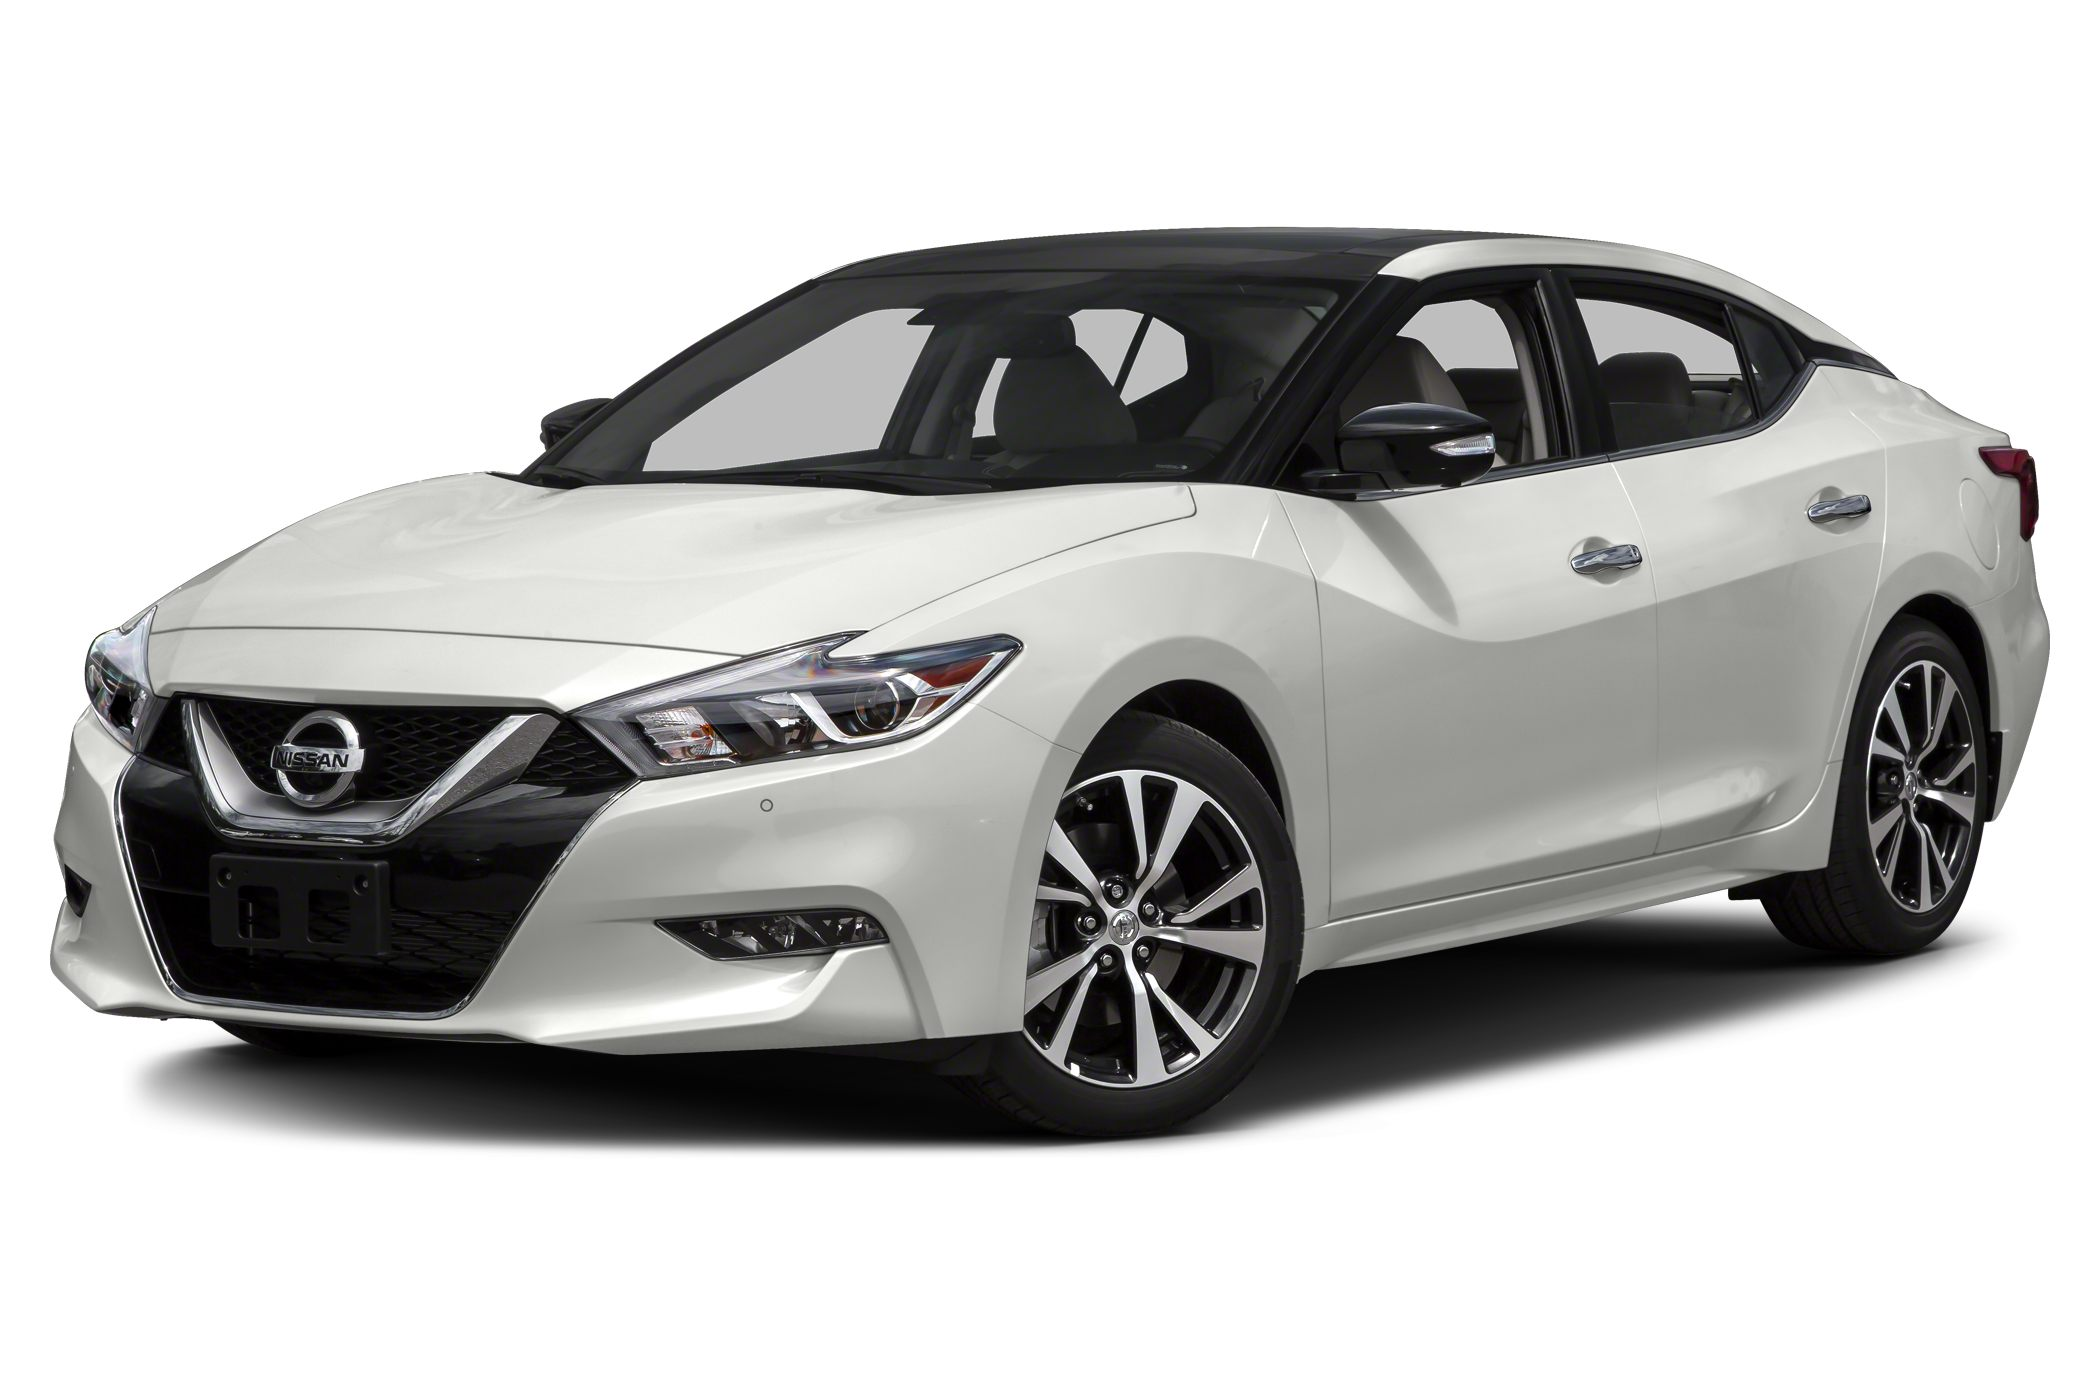 2017 nissan maxima deals prices incentives leases overview carsdirect. Black Bedroom Furniture Sets. Home Design Ideas